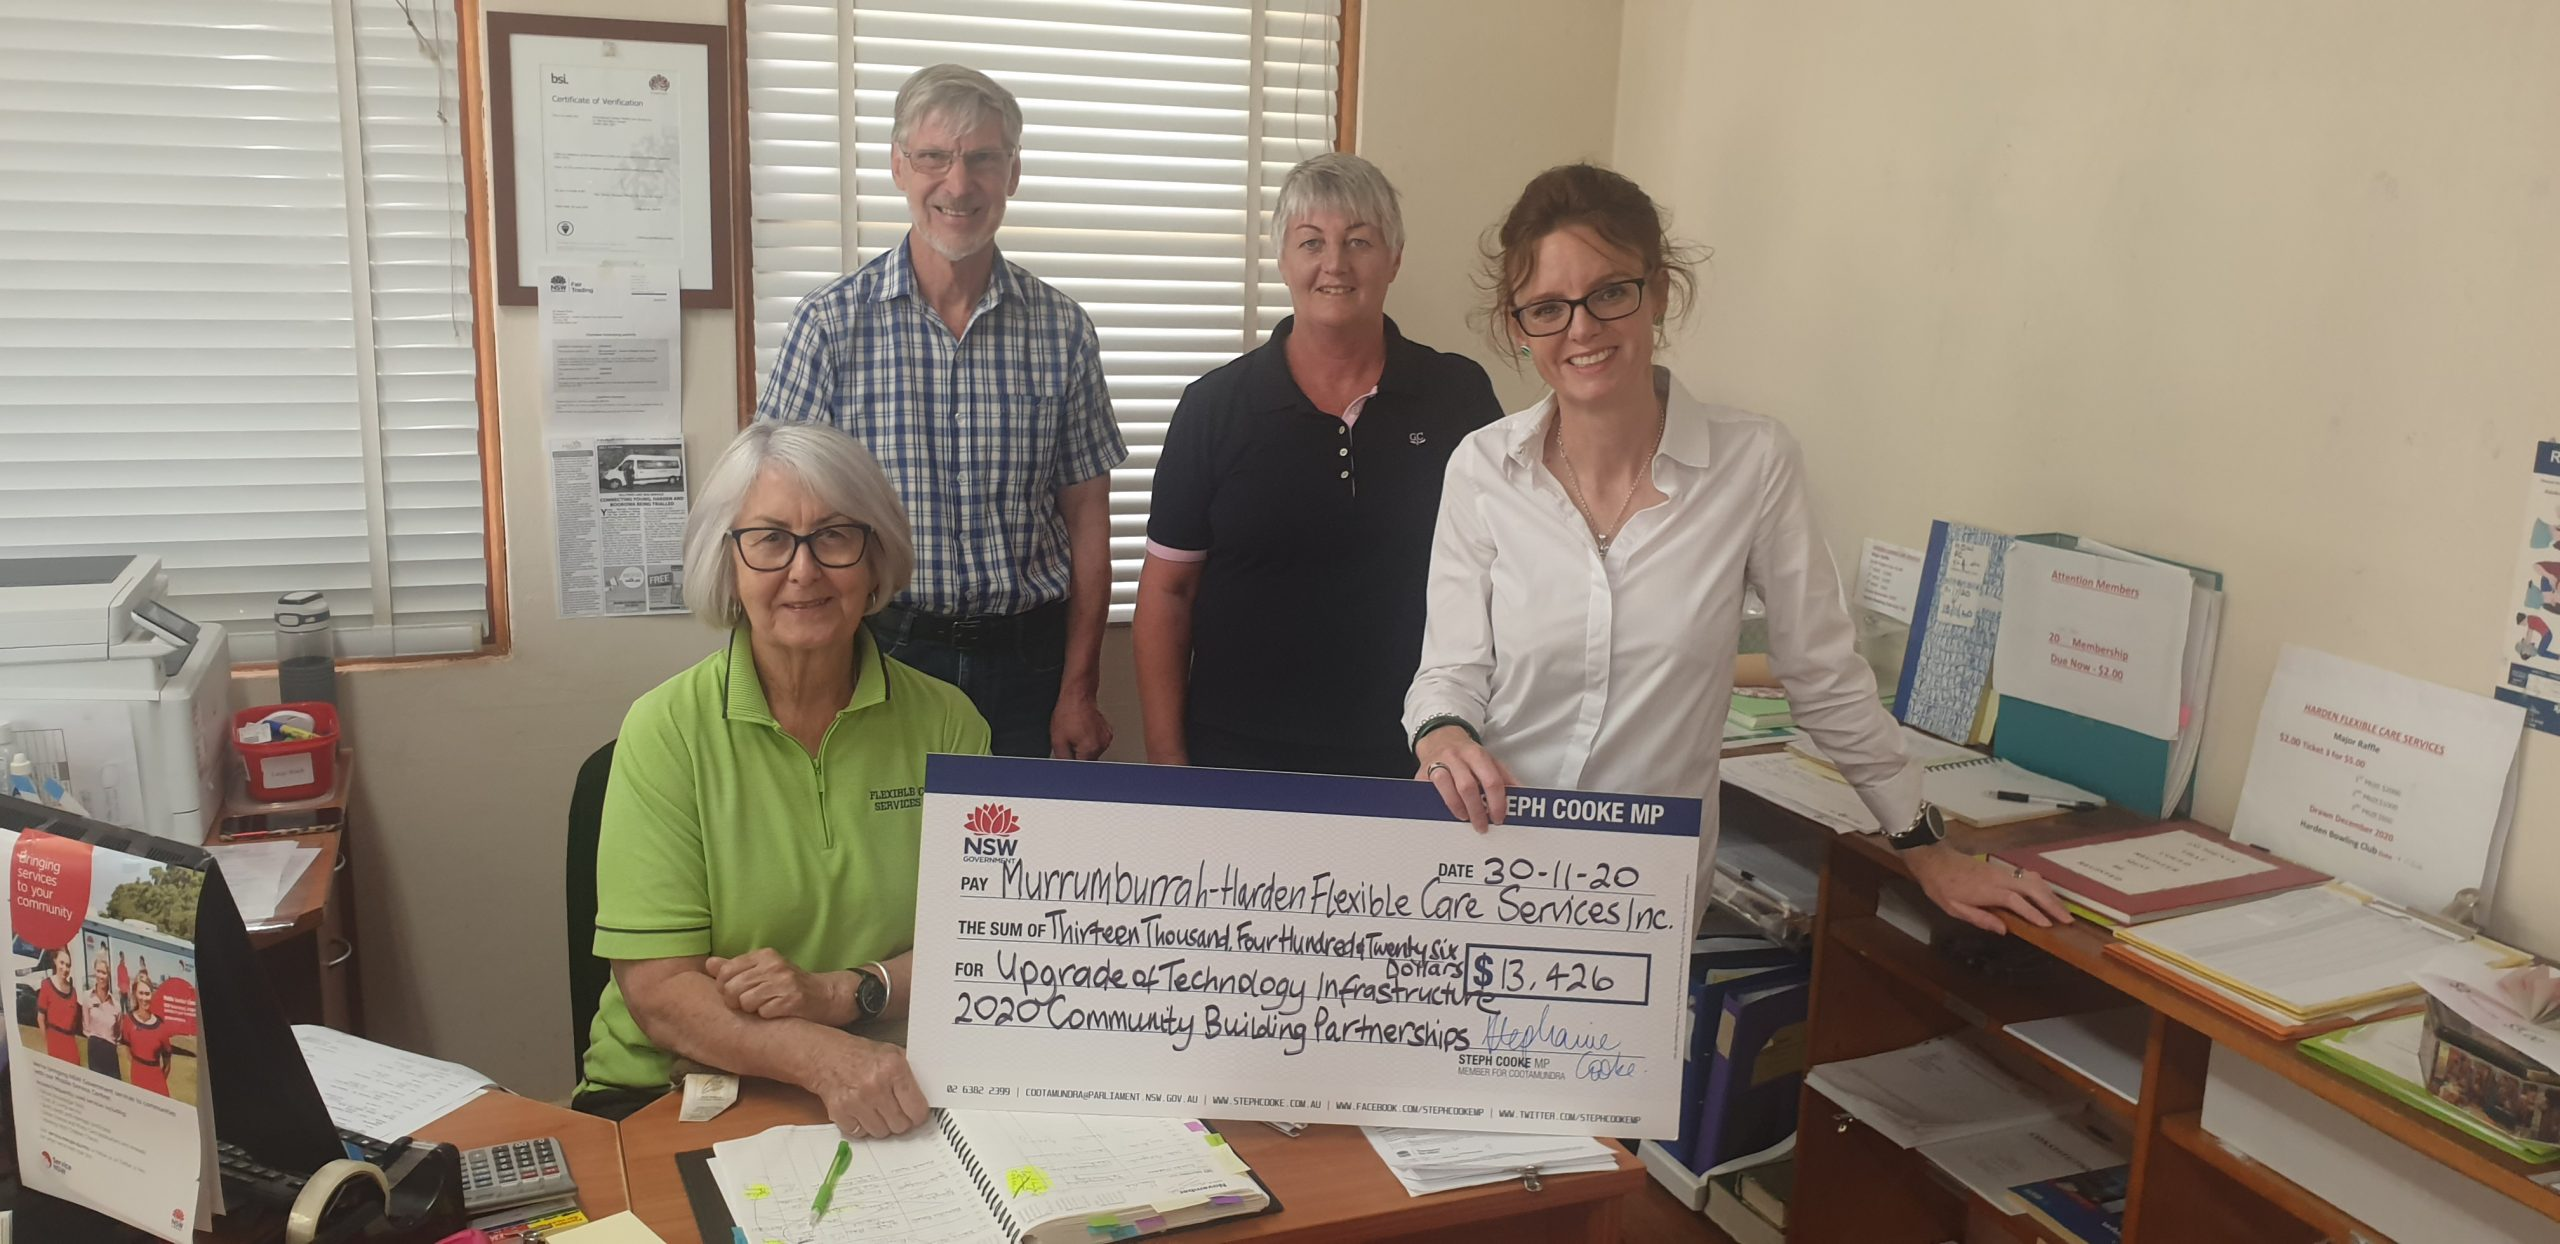 Trish Shea, Stewart Bruce, Jacinta Potts and Steph Cooke MP hold a large cheque in an office. Surrounding them is paperwork and files.